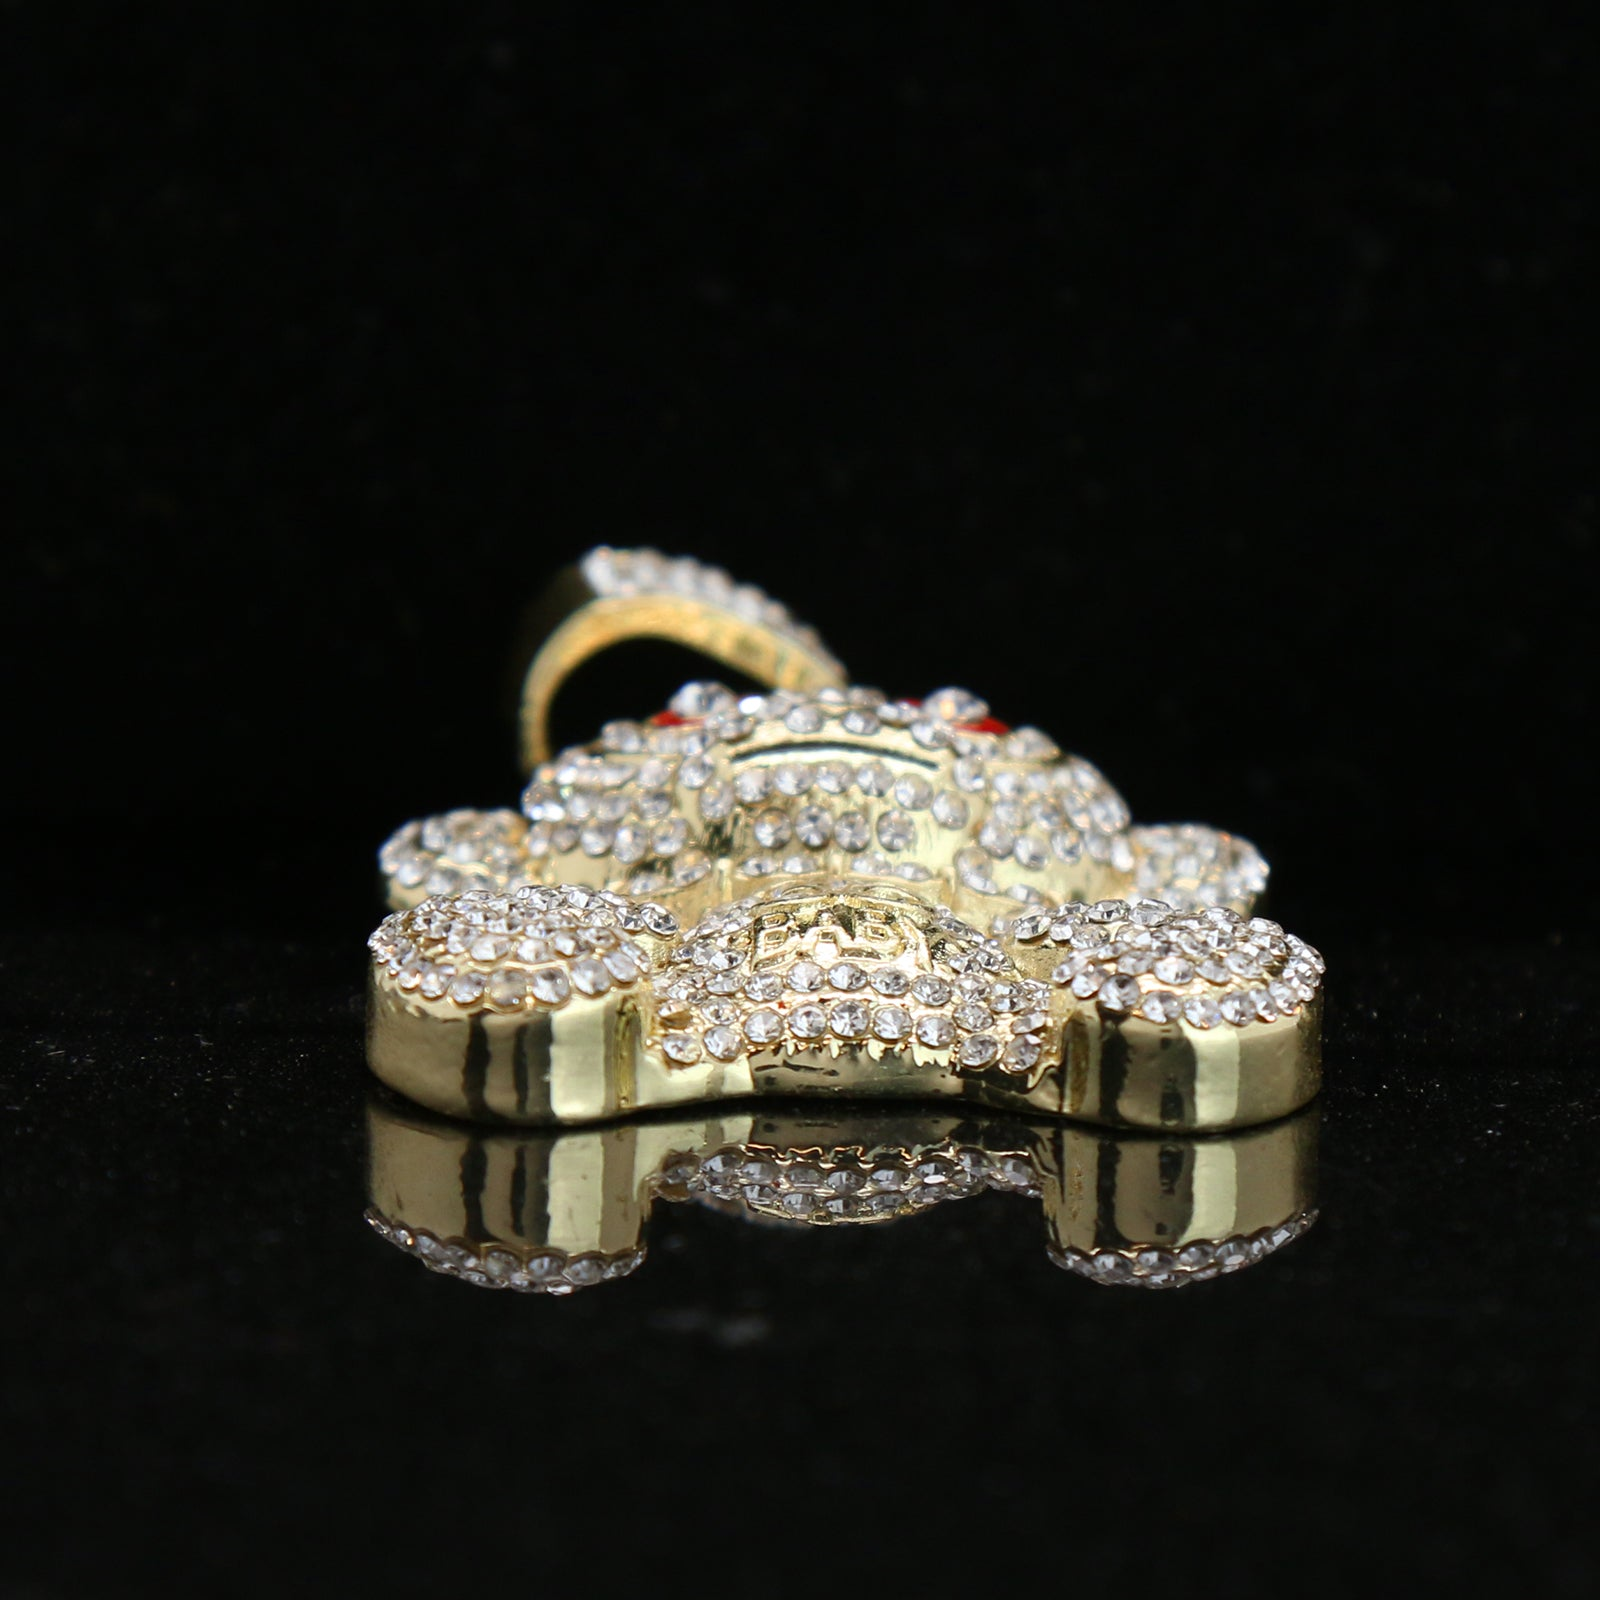 Baby 38 Iced out Pendant Gold Plated Franco Chain 4mm 24""